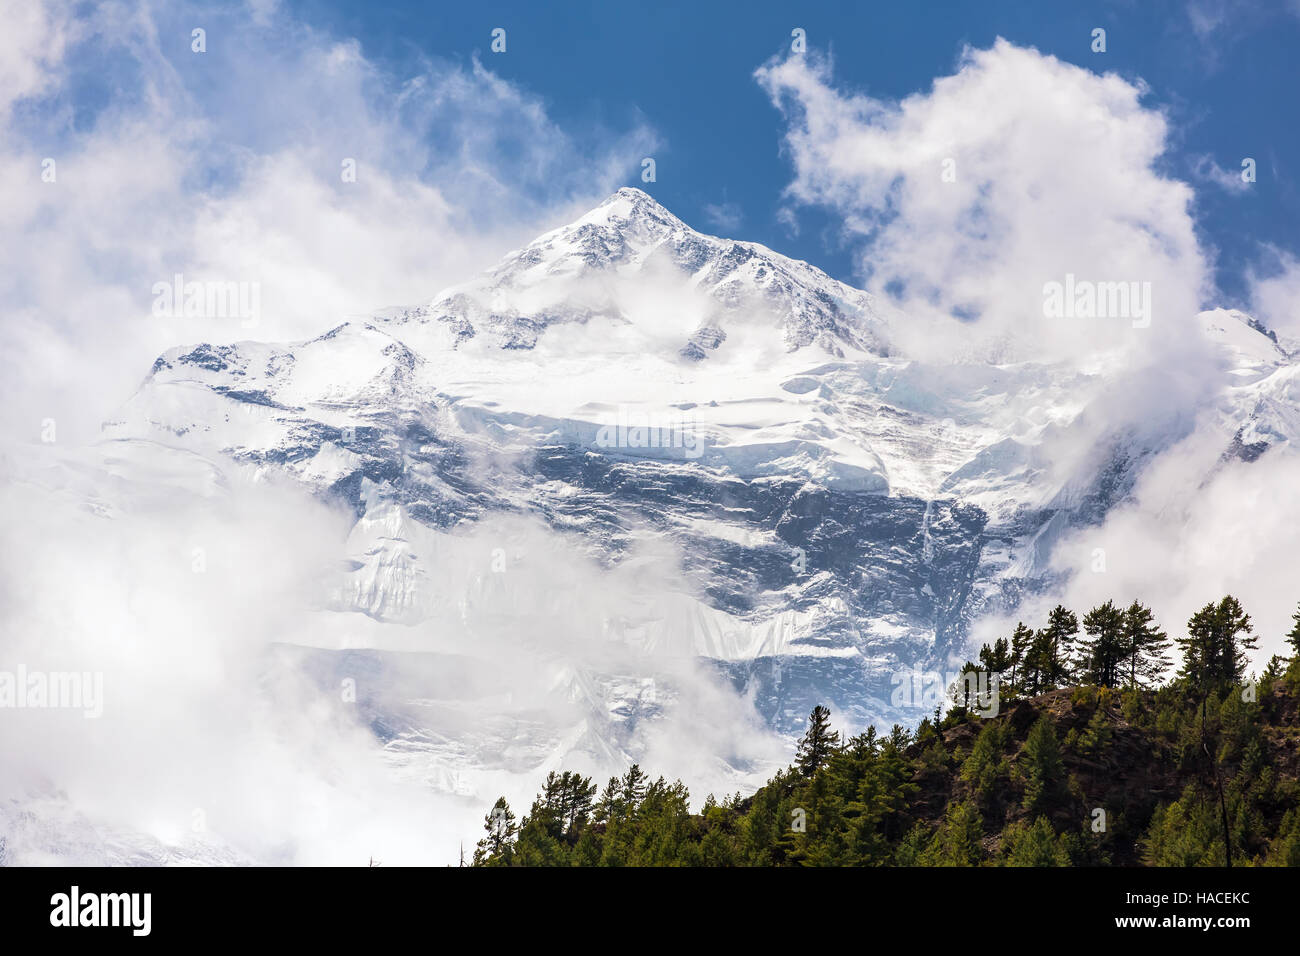 Beautiful Snowy Mountain Landscape Annapurna Range In Himalayas Nepal